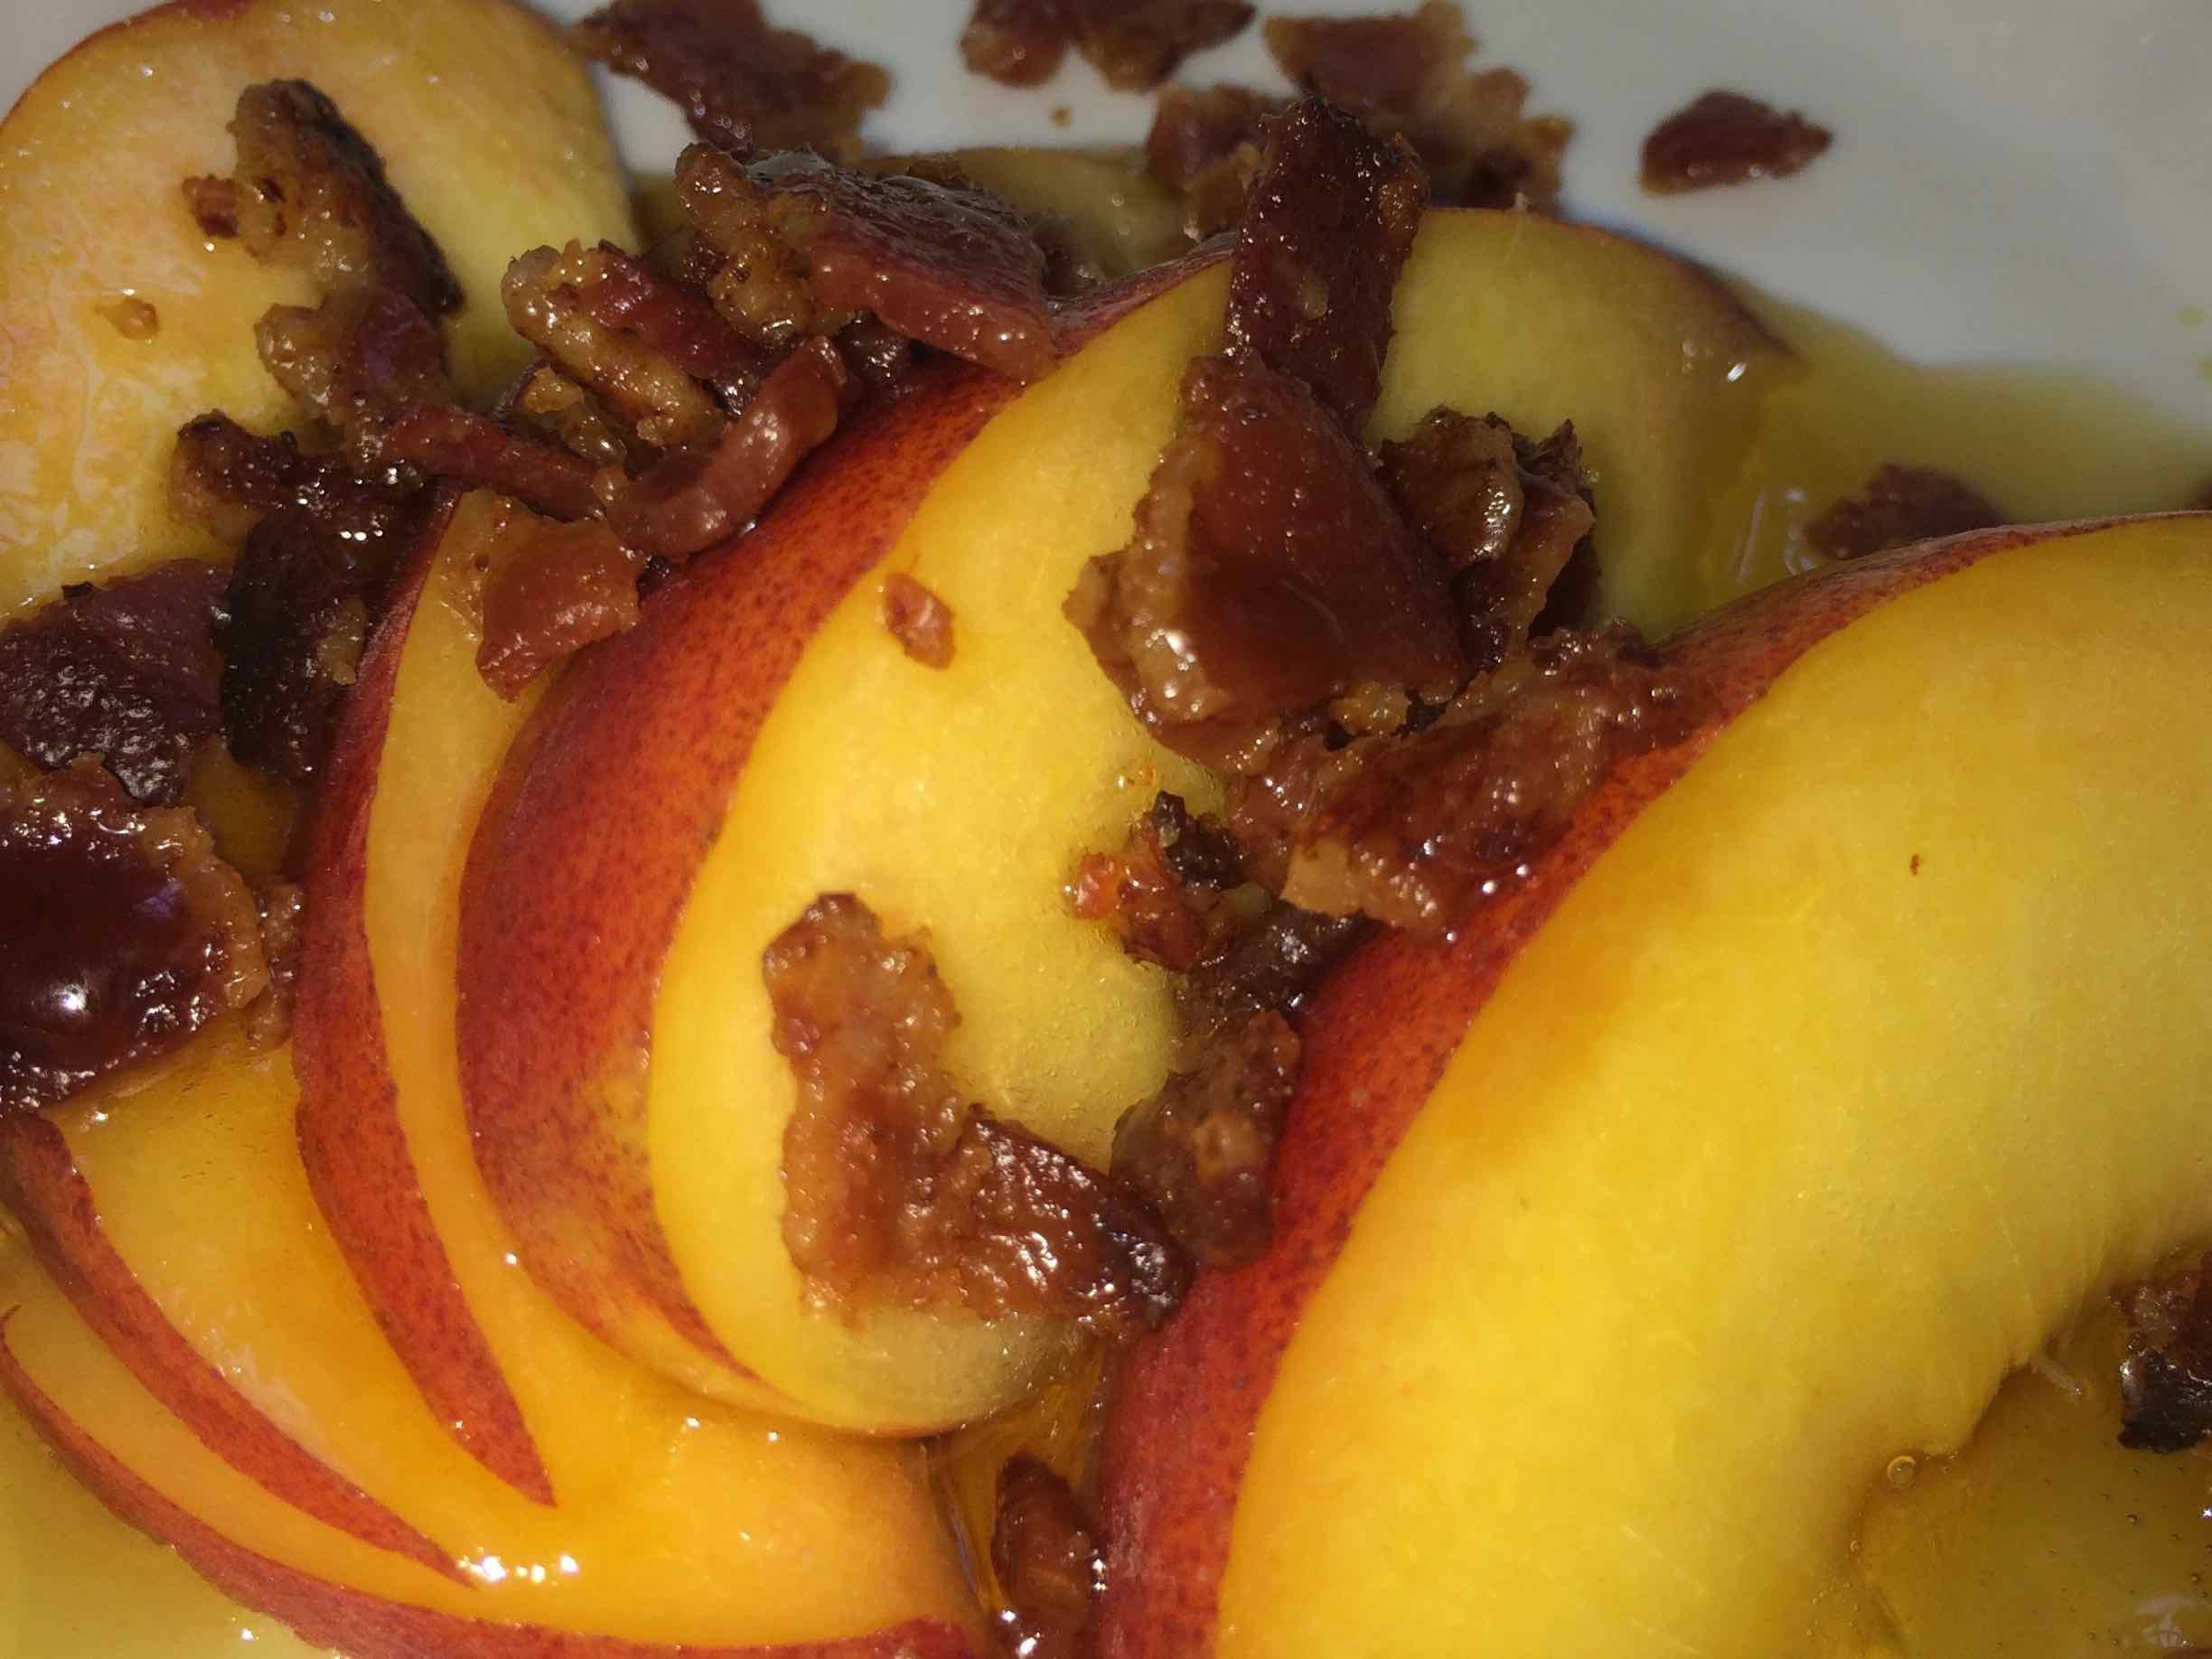 Breakfast at Coach Stop Inn Bed and Breakfast - Peach slices with candied bacon bits